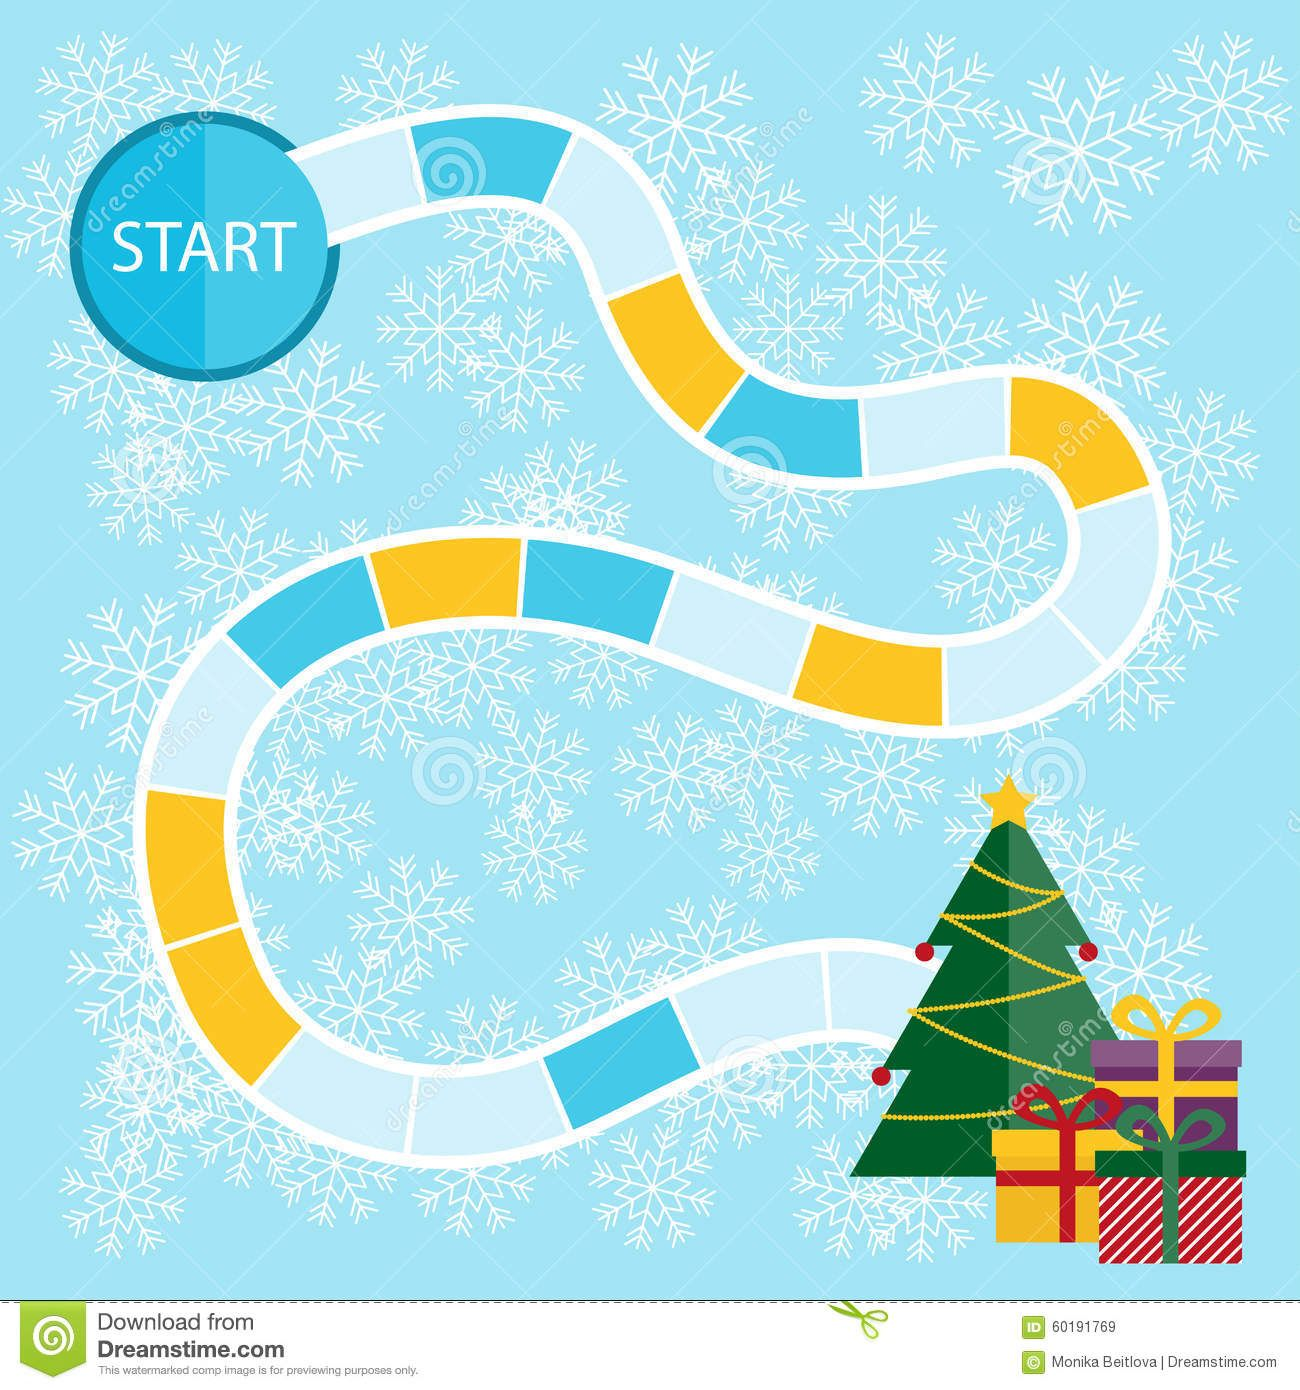 Christmas board game board game pinterest christmas board photo about template for a christmas board game with start and tree with presents in the finish pronofoot35fo Images